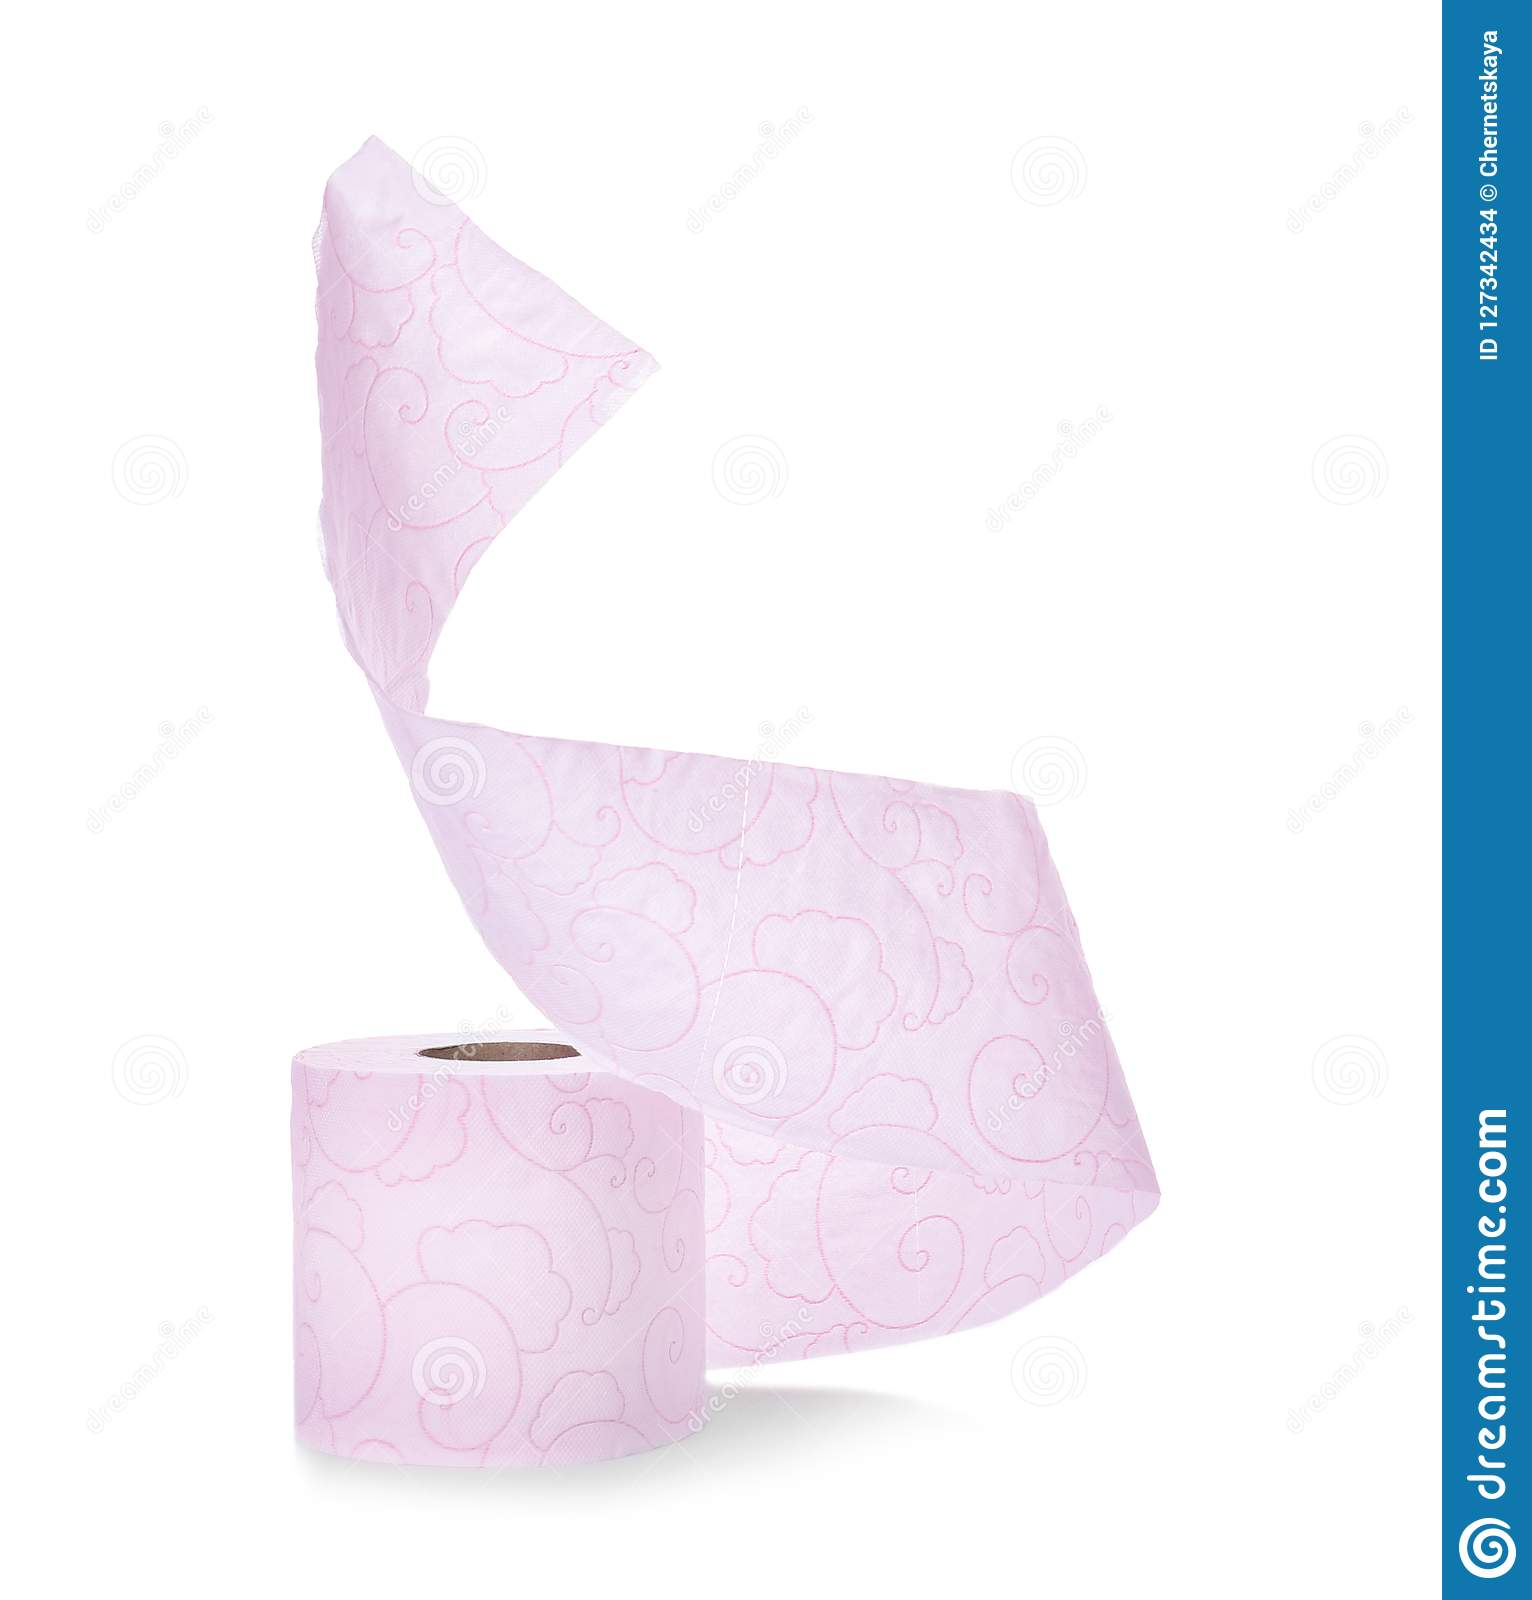 Roll of toilet paper on white background.